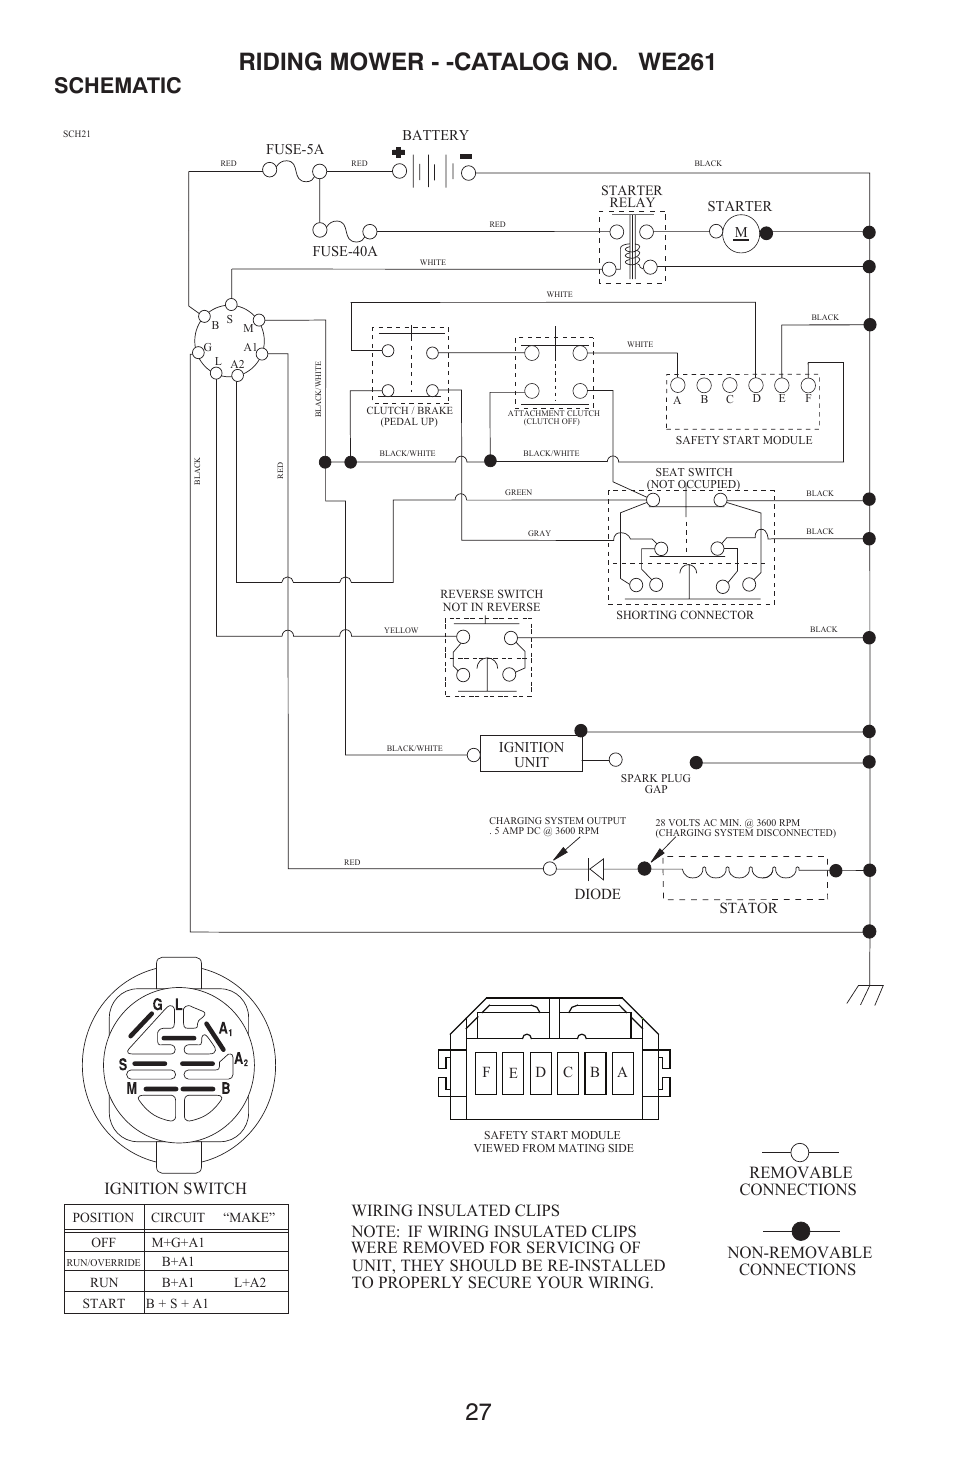 Repair Parts  Schematic  Non  40